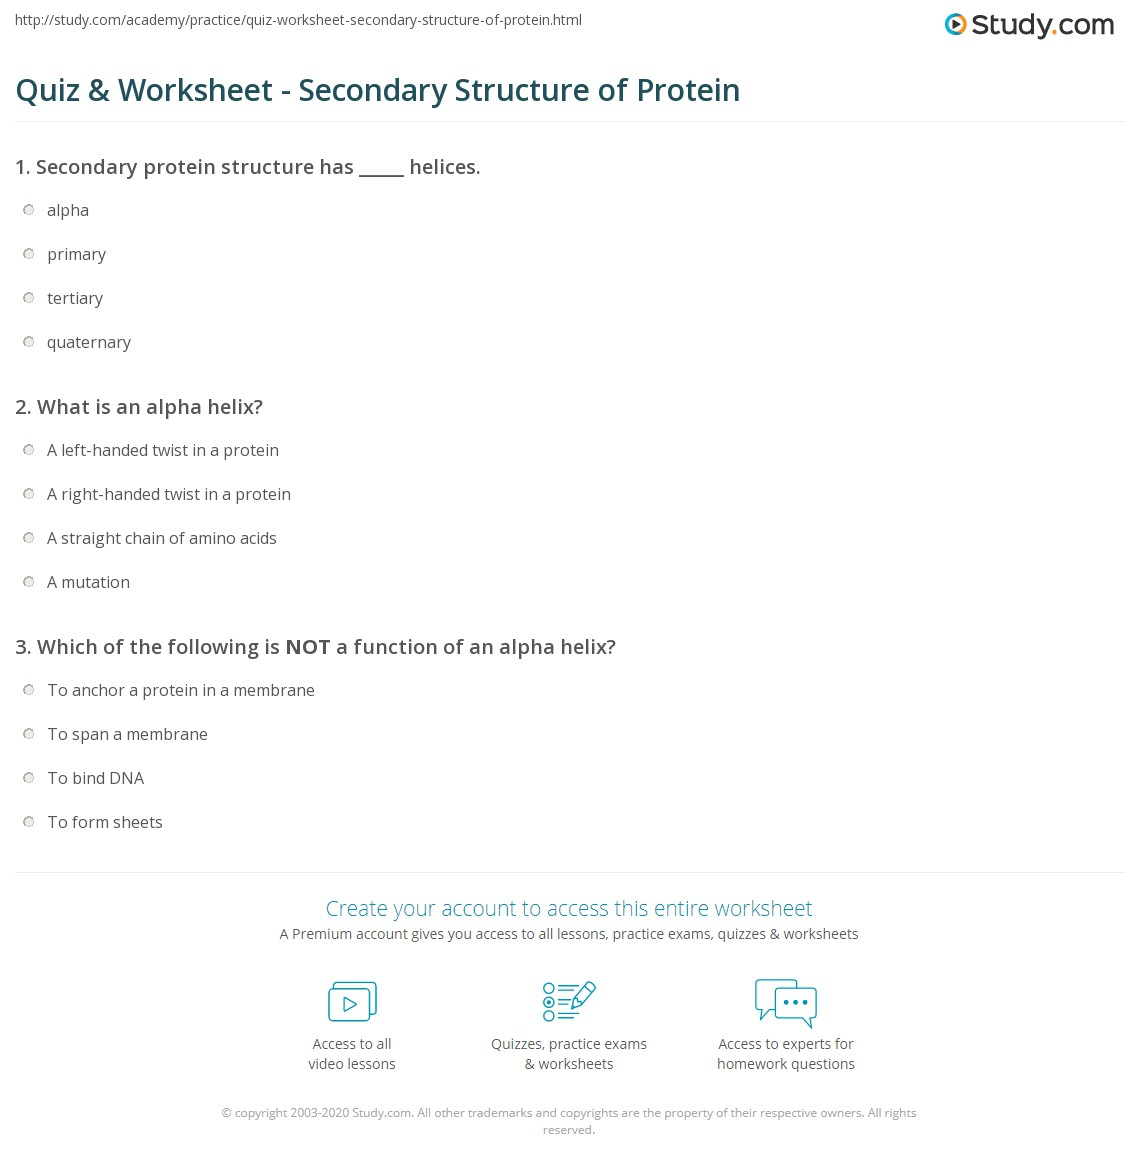 Quiz & Worksheet - Secondary Structure of Protein   Study.com